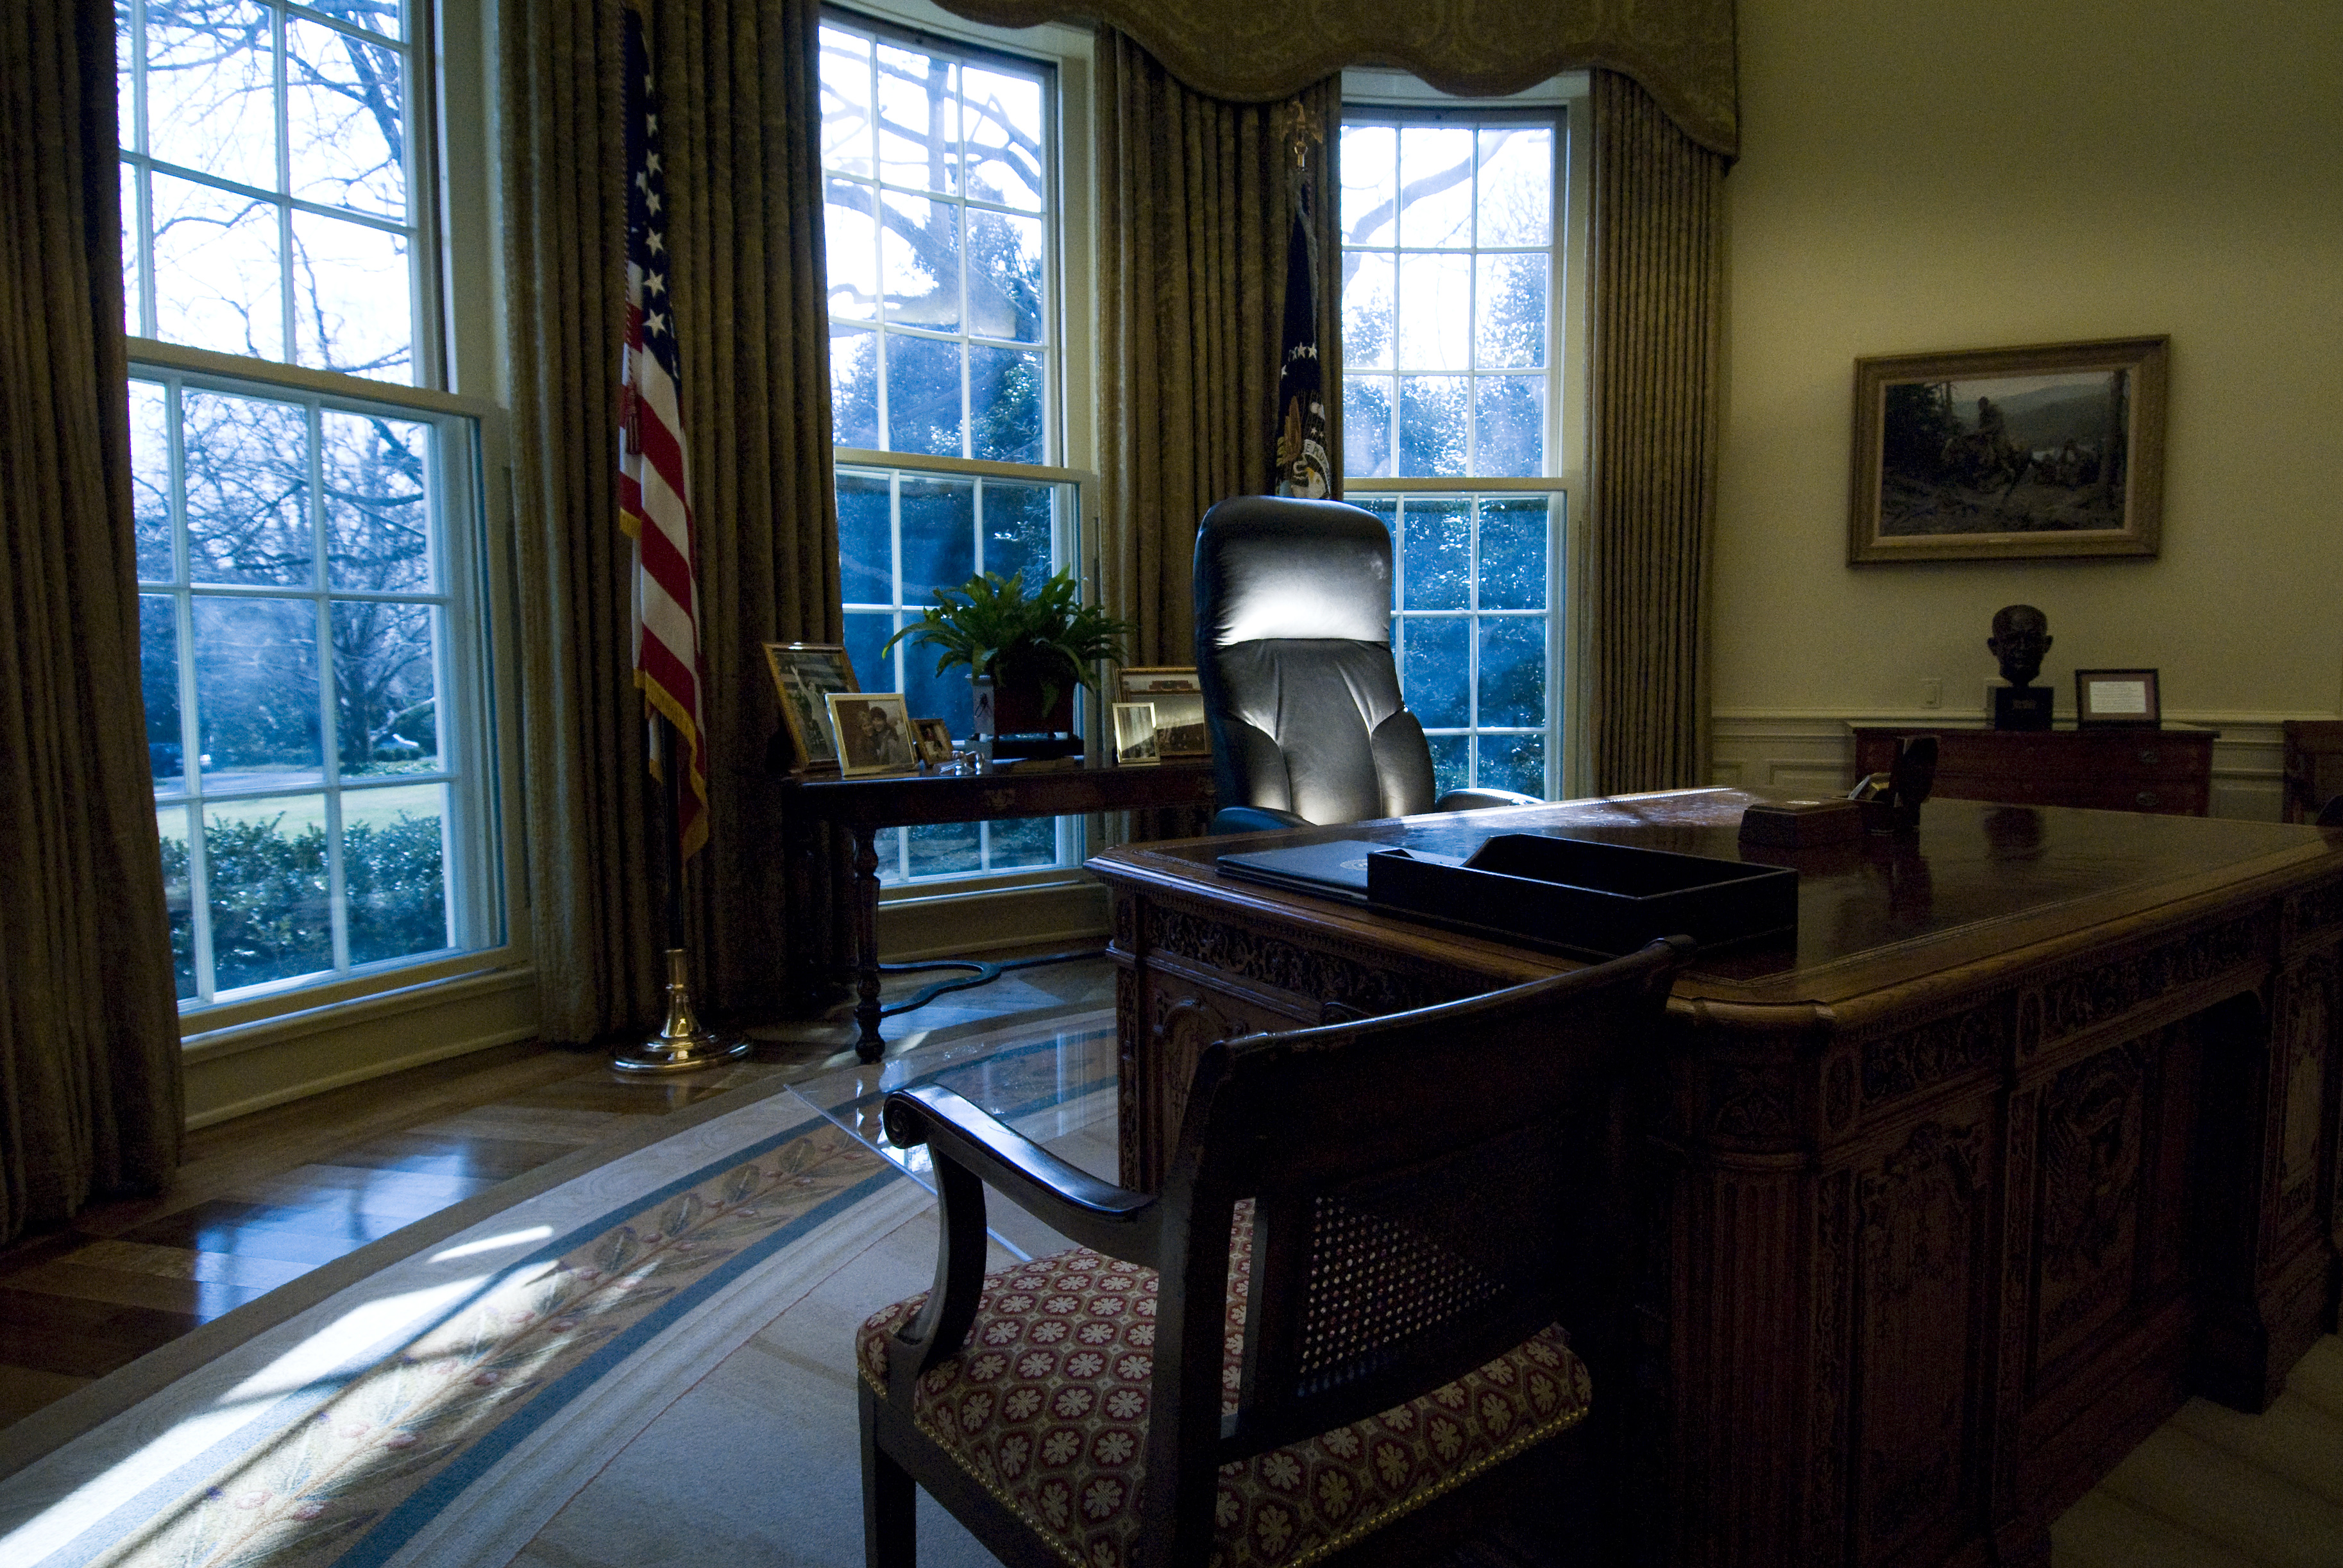 The president's desk, named Resolute, sits in the Oval Office at the White House in Washington